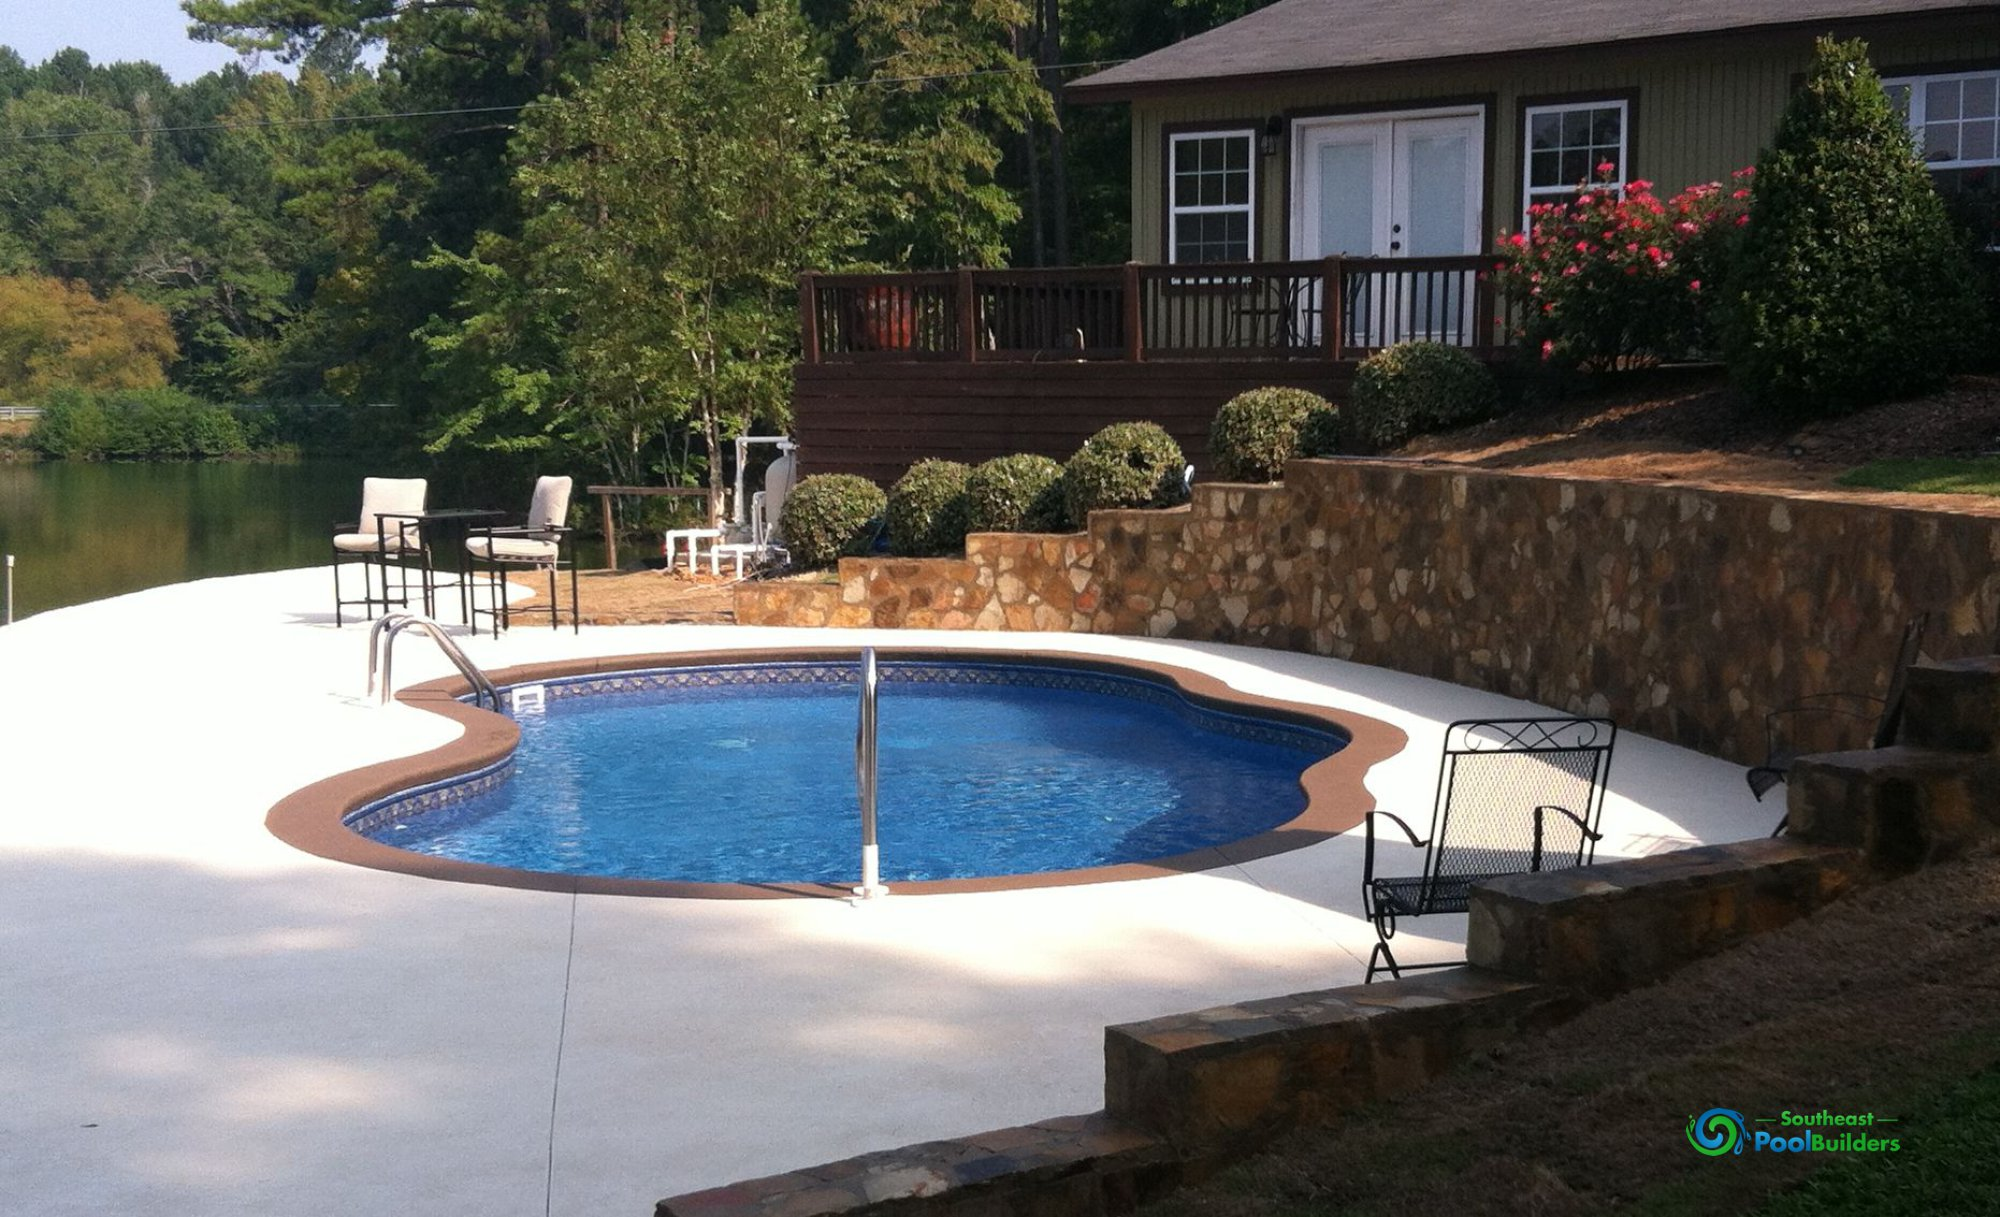 Vinyl Liner Pool #001 By Southeast Pool Builders ...